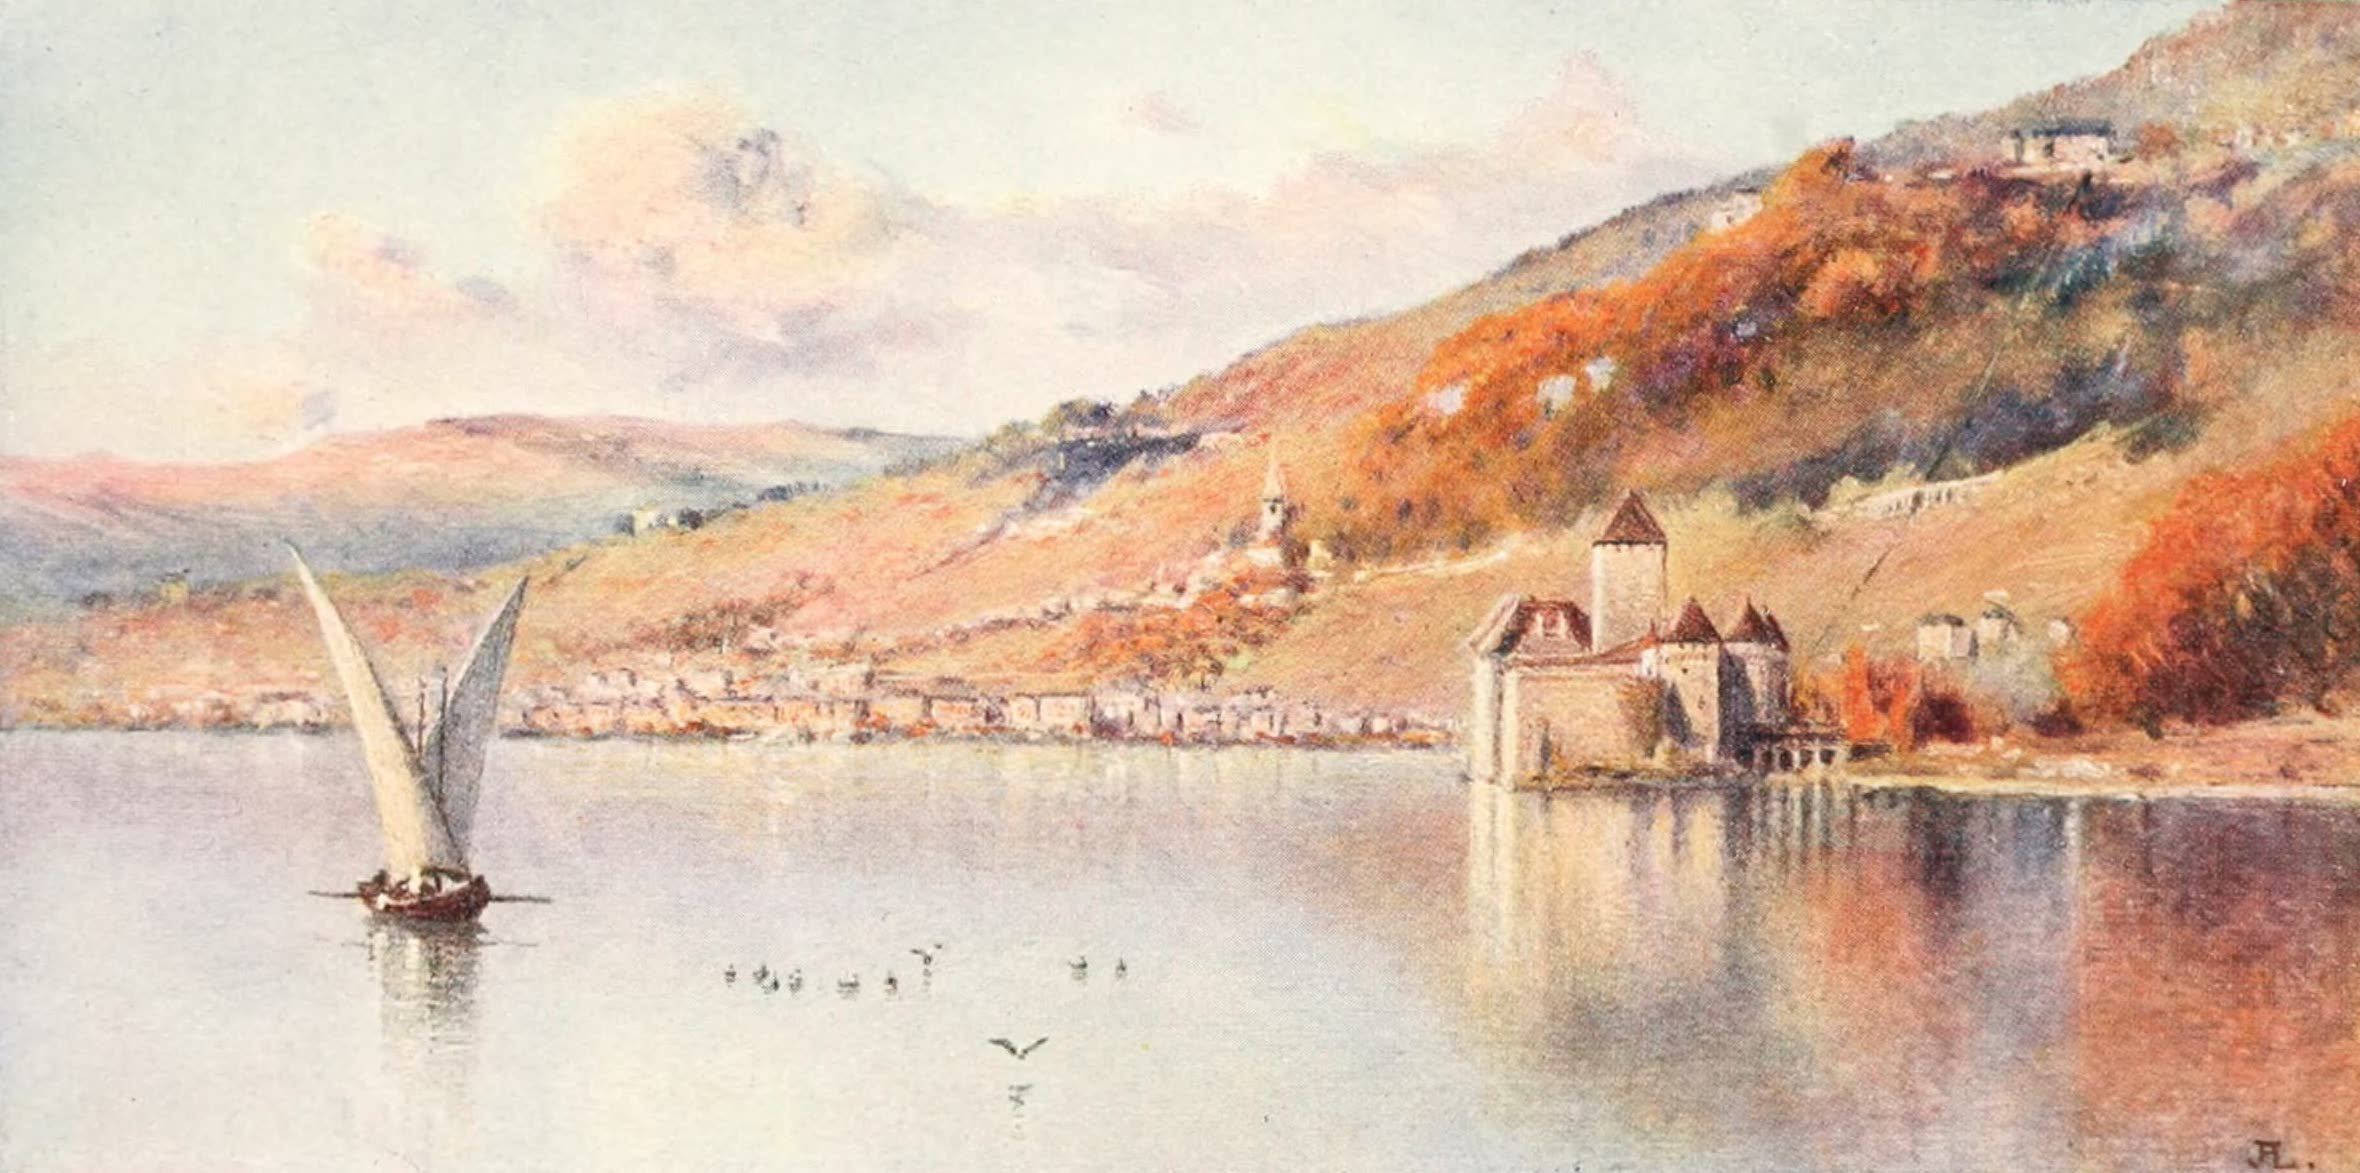 Montreux, Painted and Described - Montreux from the Lake : Autumn (1908)